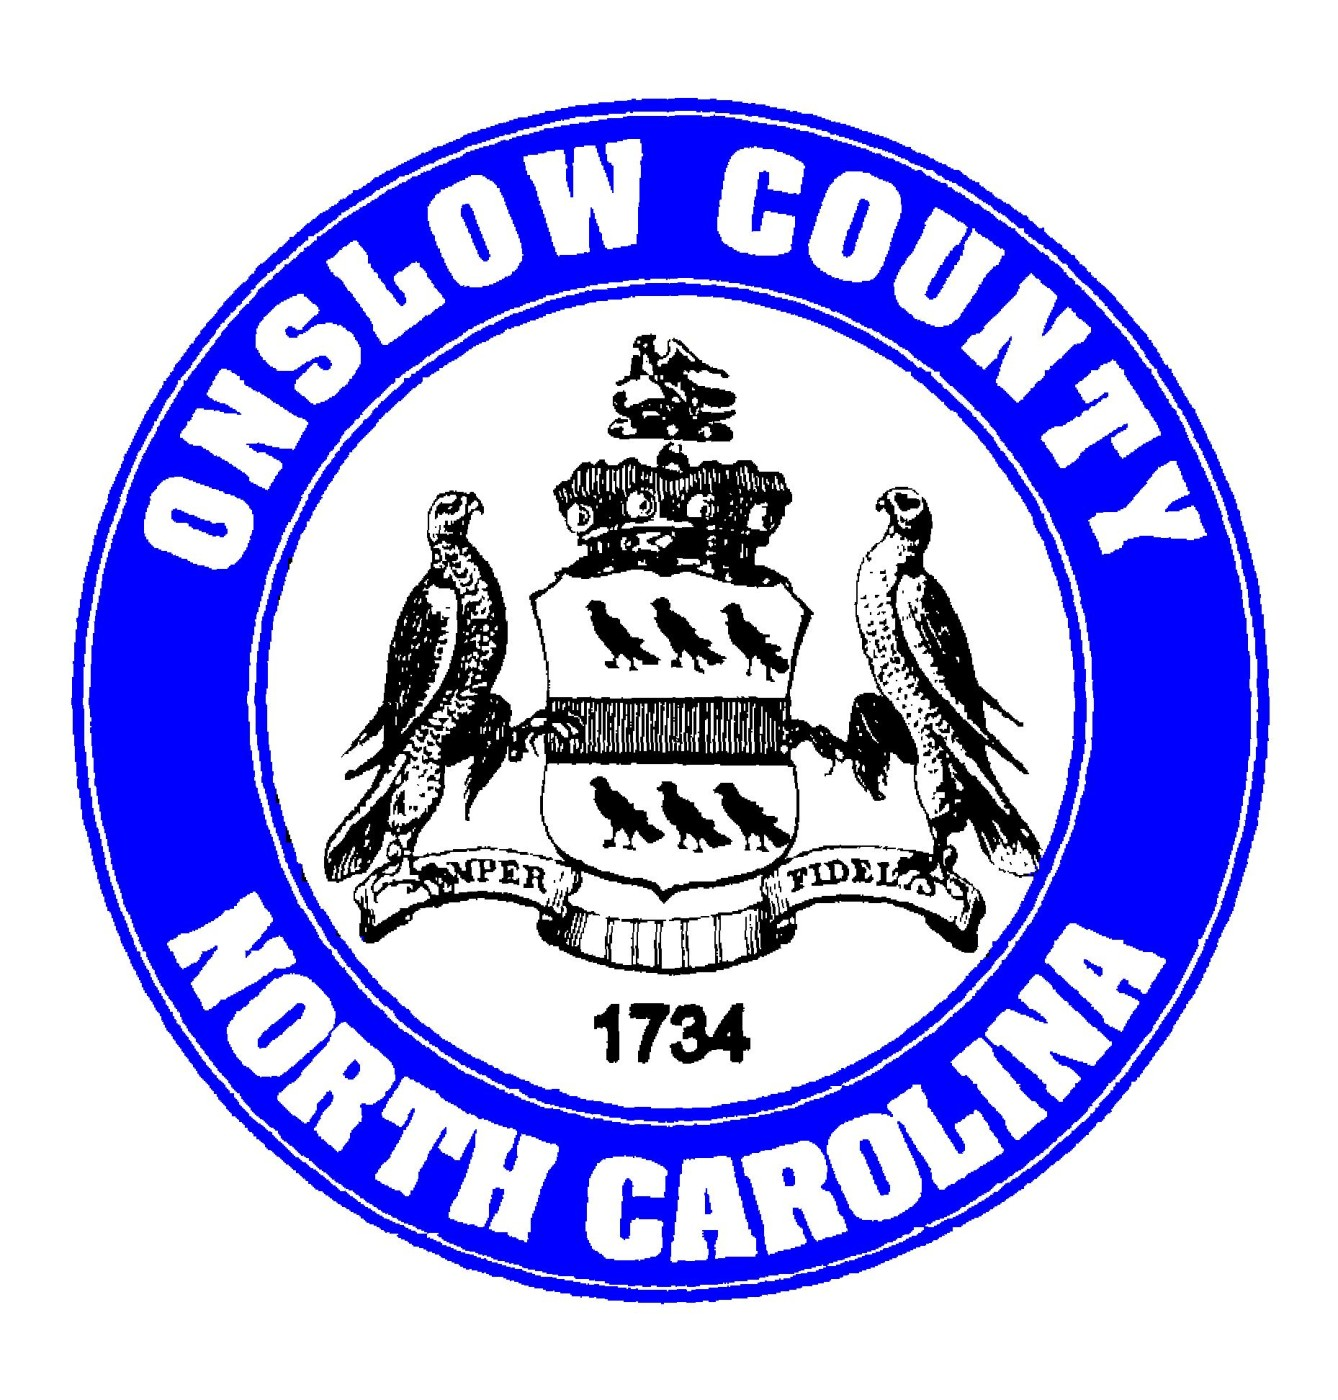 Onslow County Seal